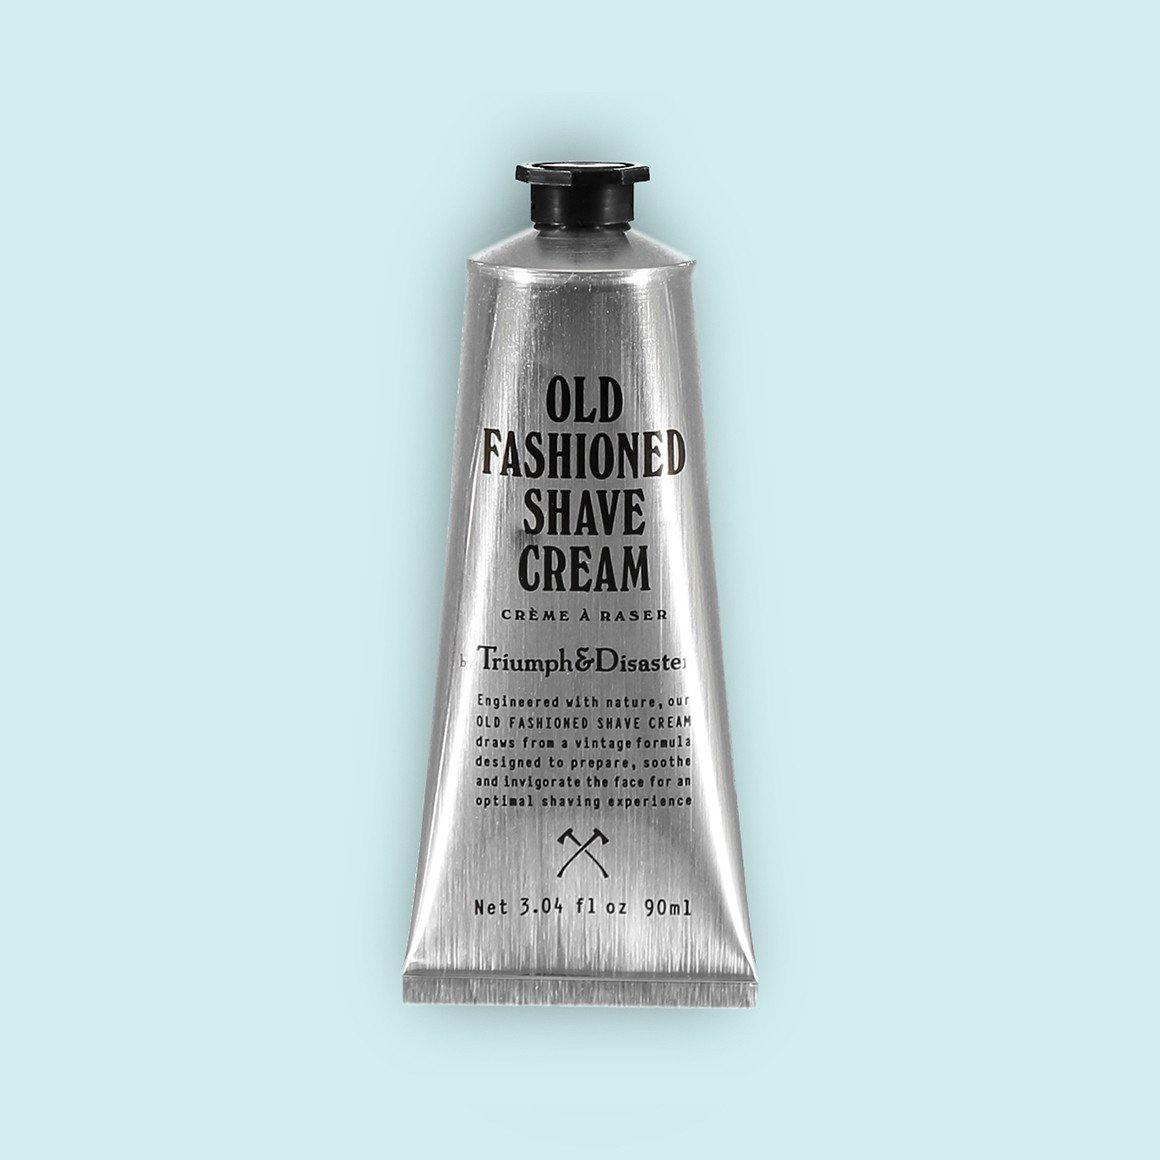 Old Fashioned Shave Cream - Crema de Afeitado - Triumph & Disaster at Barbazul - 1